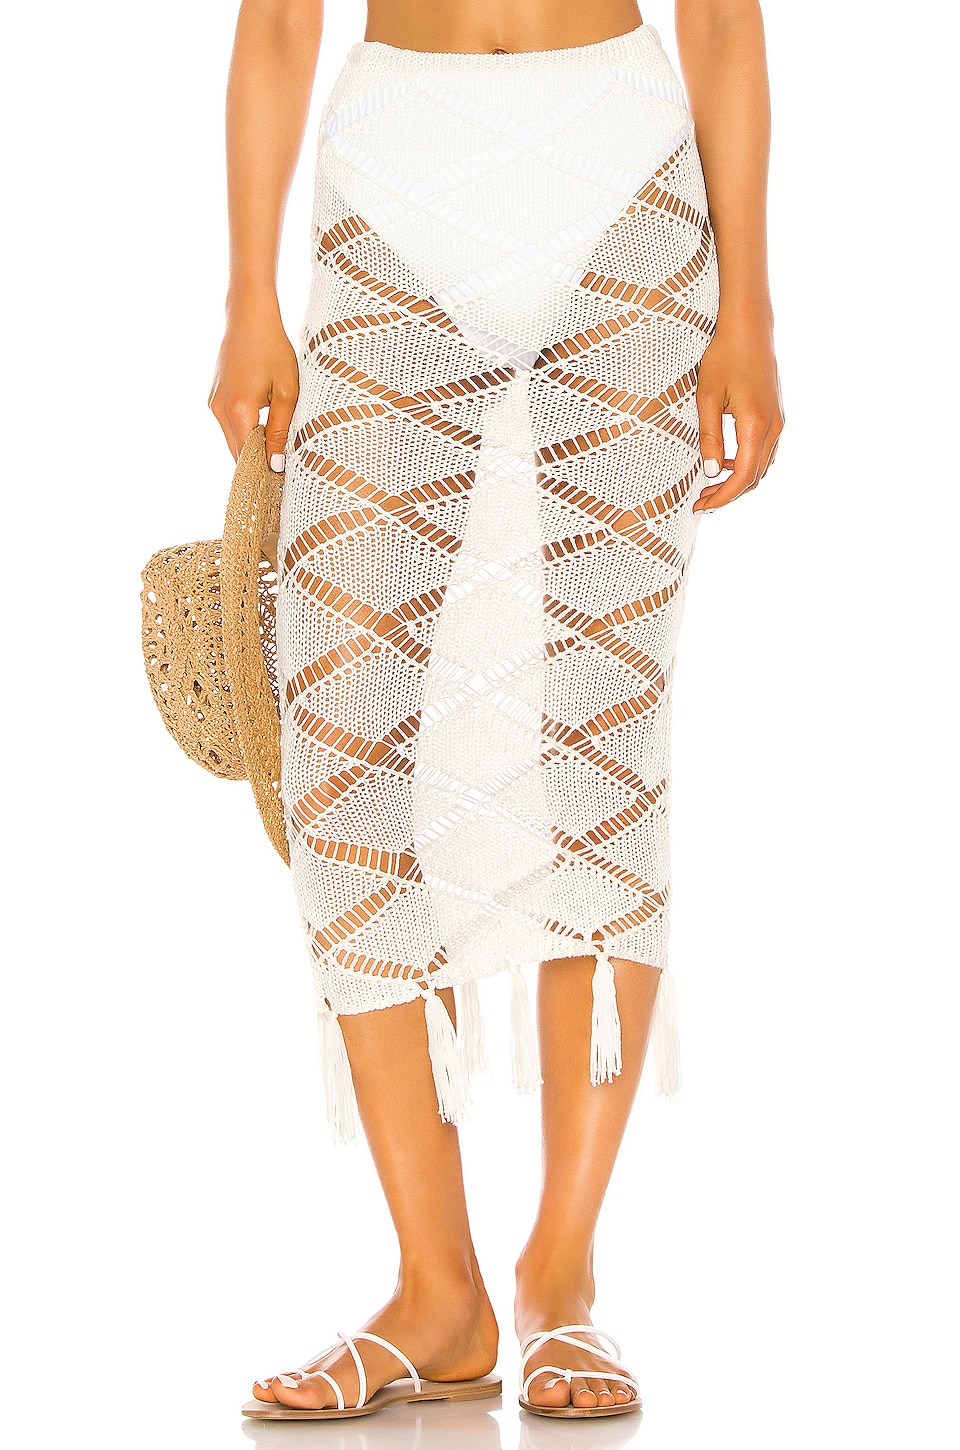 Shaycation x REVOLVE Bell Skirt in White